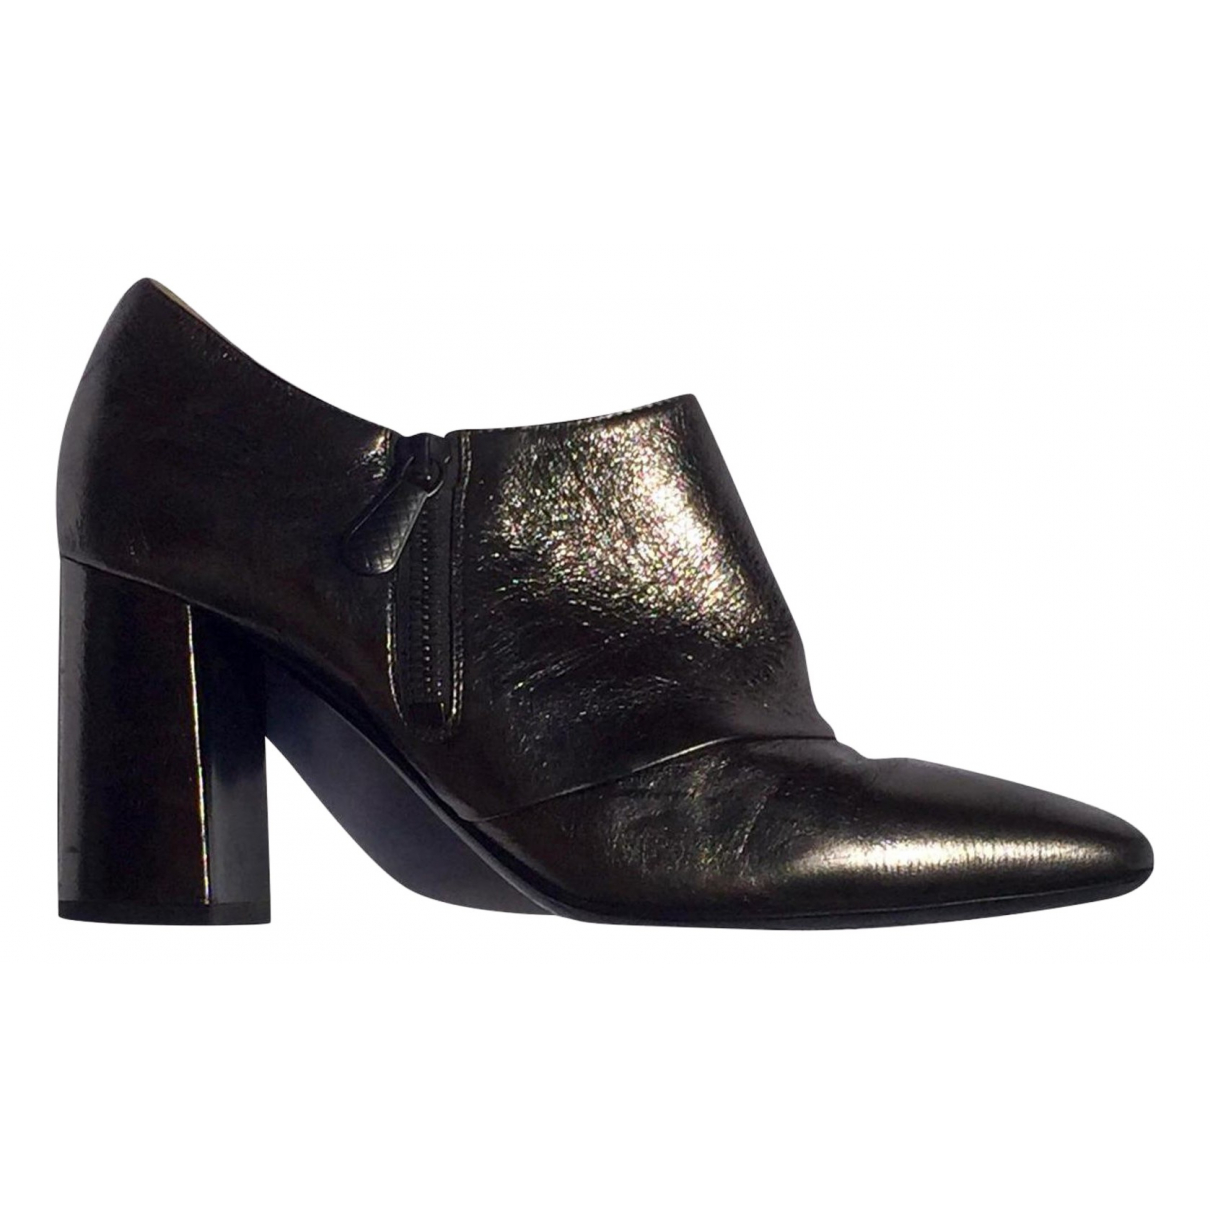 Bottega Veneta N Patent leather Ankle boots for Women 37.5 EU